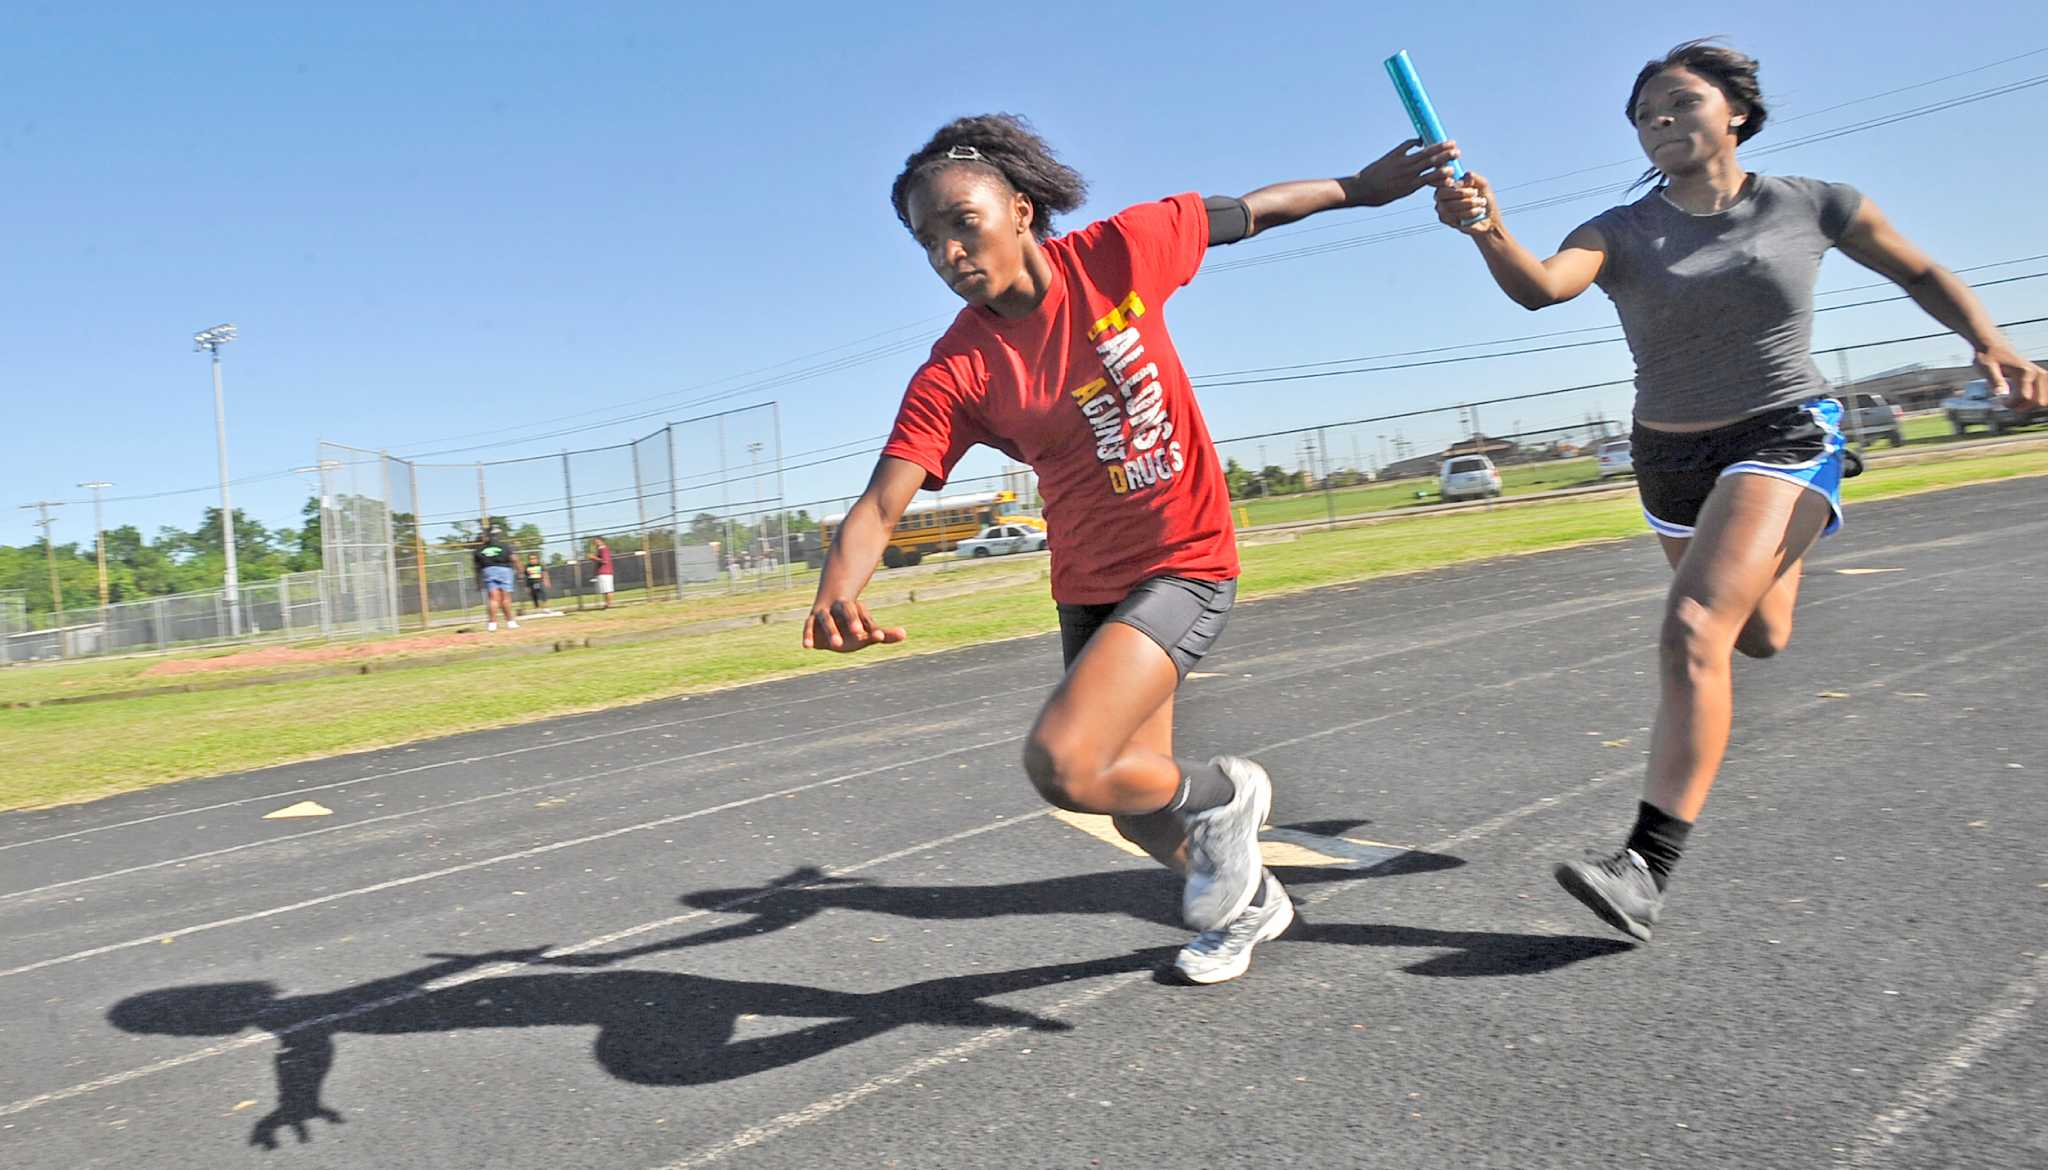 neches single girls San augustine — the neches high school girls' track and field team placed fourth overall at the area 21-22/2a meet last thursday.